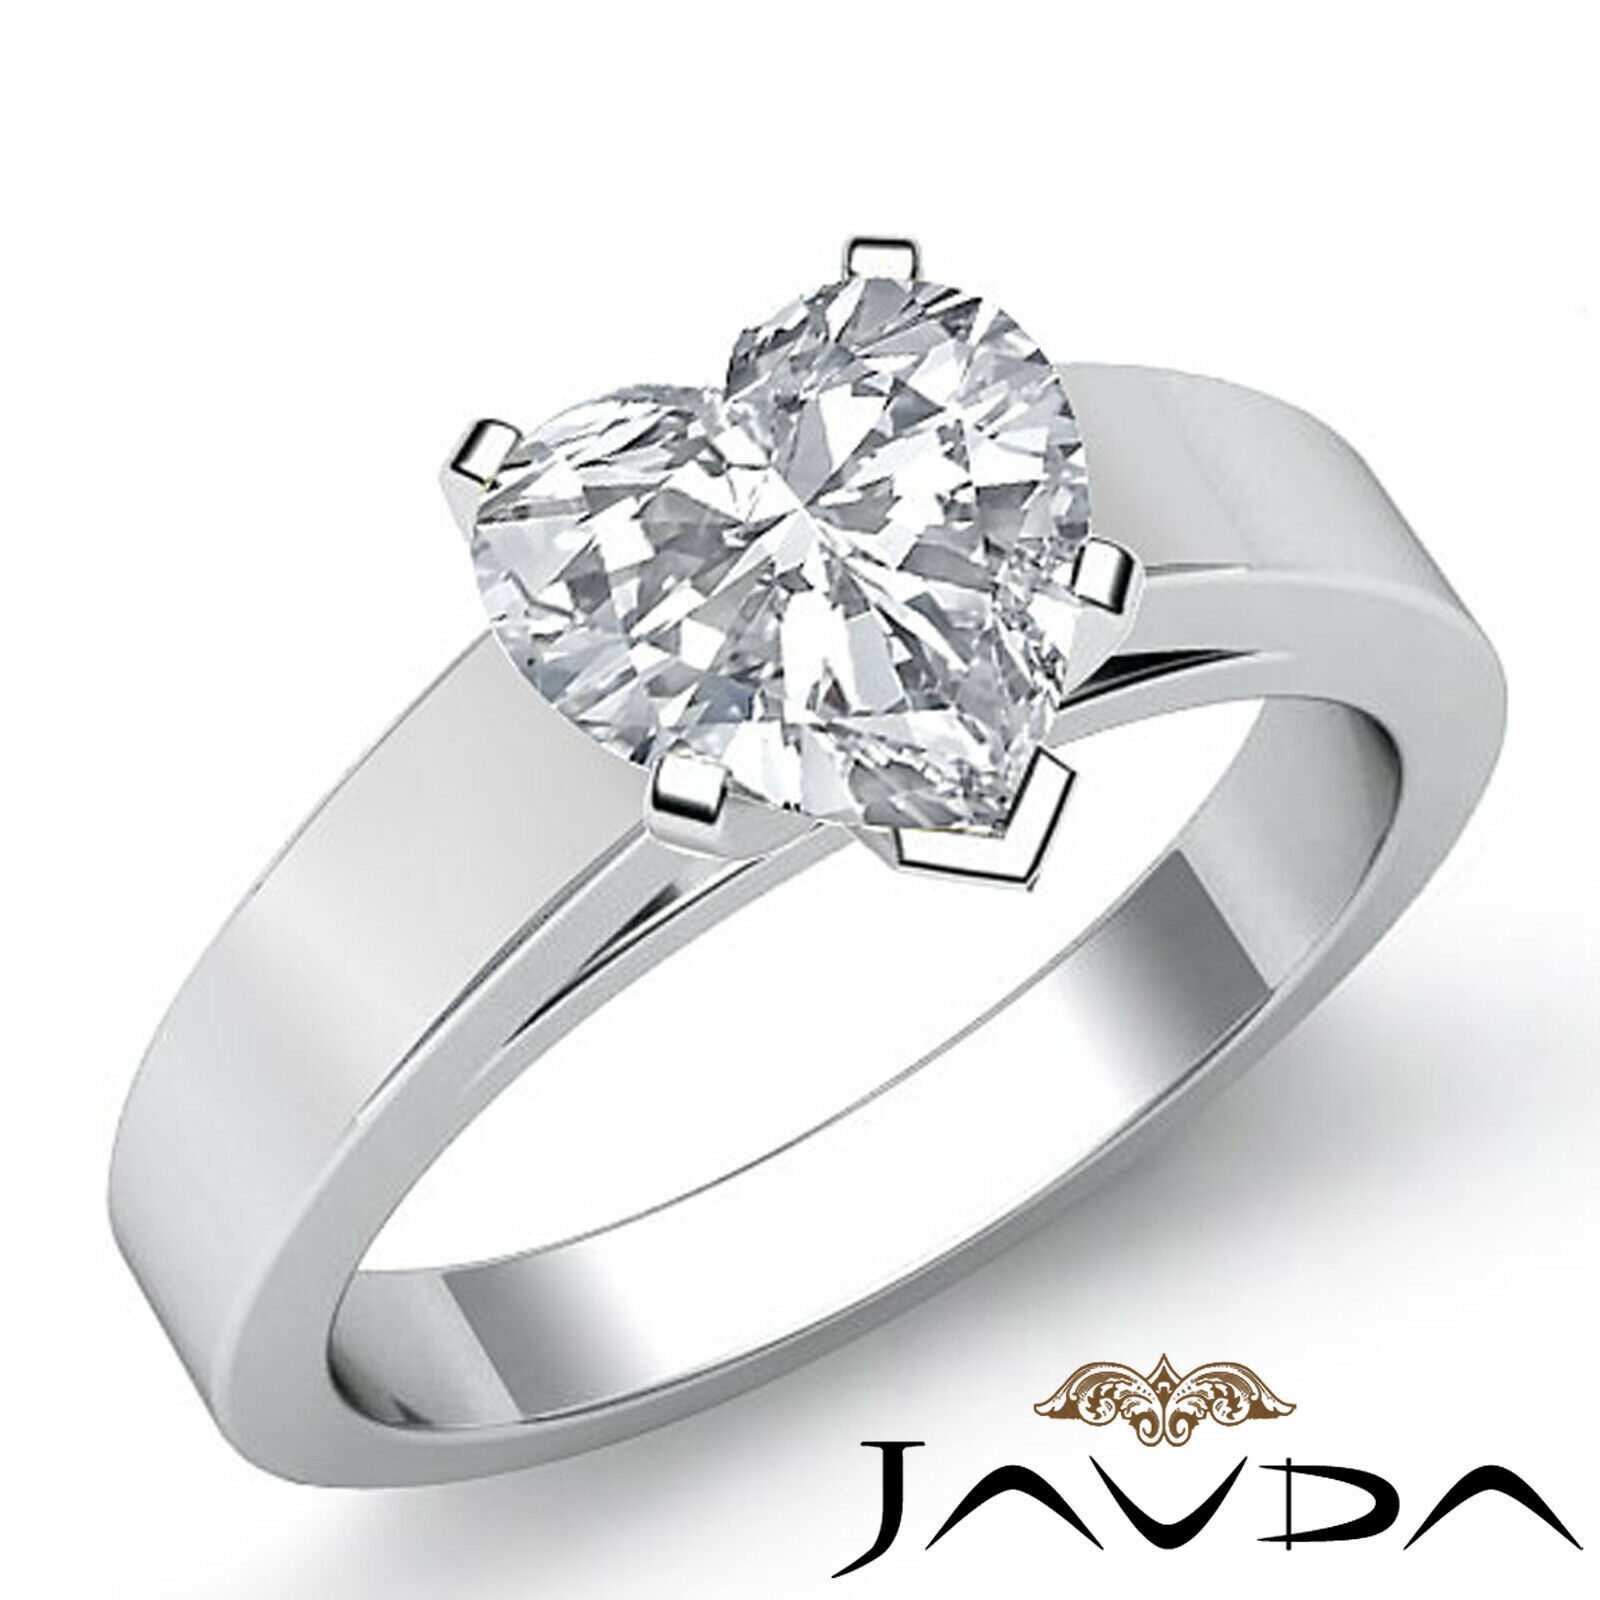 Heart Diamond Engagement GIA H VS2 4 Prong cathedral Solitaire Gold Ring 1.2 ct.